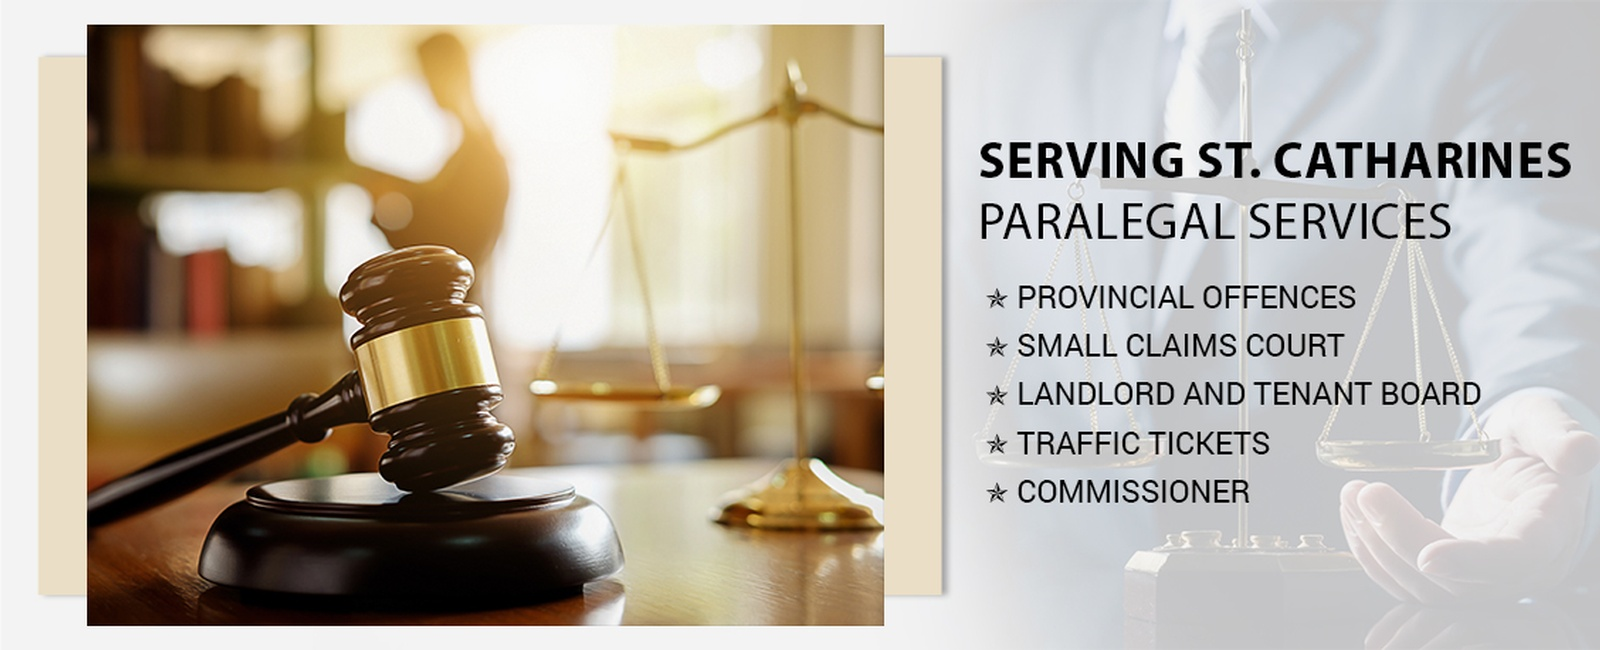 Paralegal services in St. Catharines